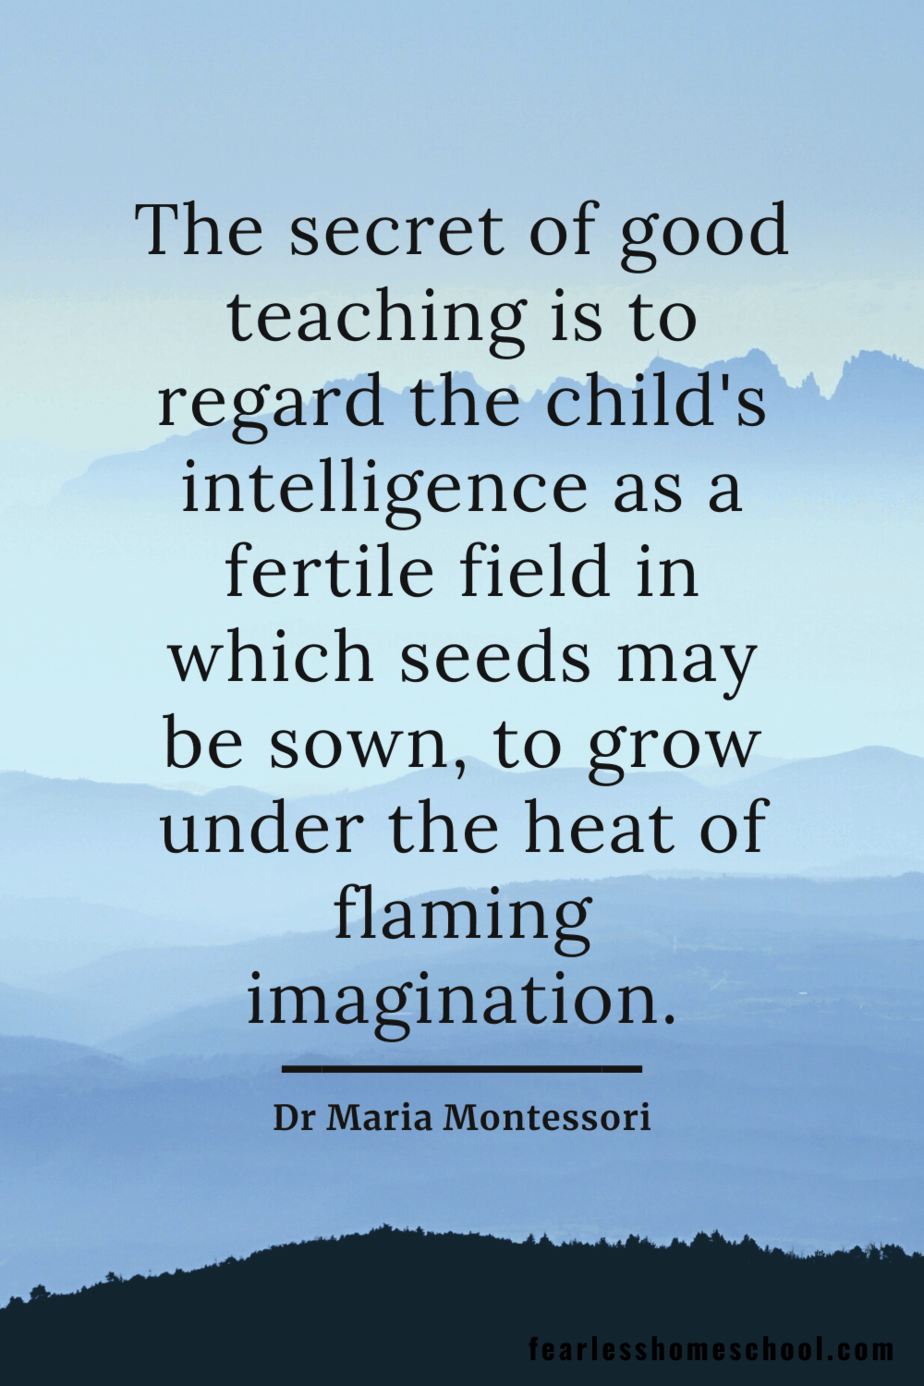 The secret of good teaching is to regard the child's intelligence as a fertile field in which seeds may be sown, to grow under the heat of flaming imagination. Dr Maria Montessori homeschooling quote